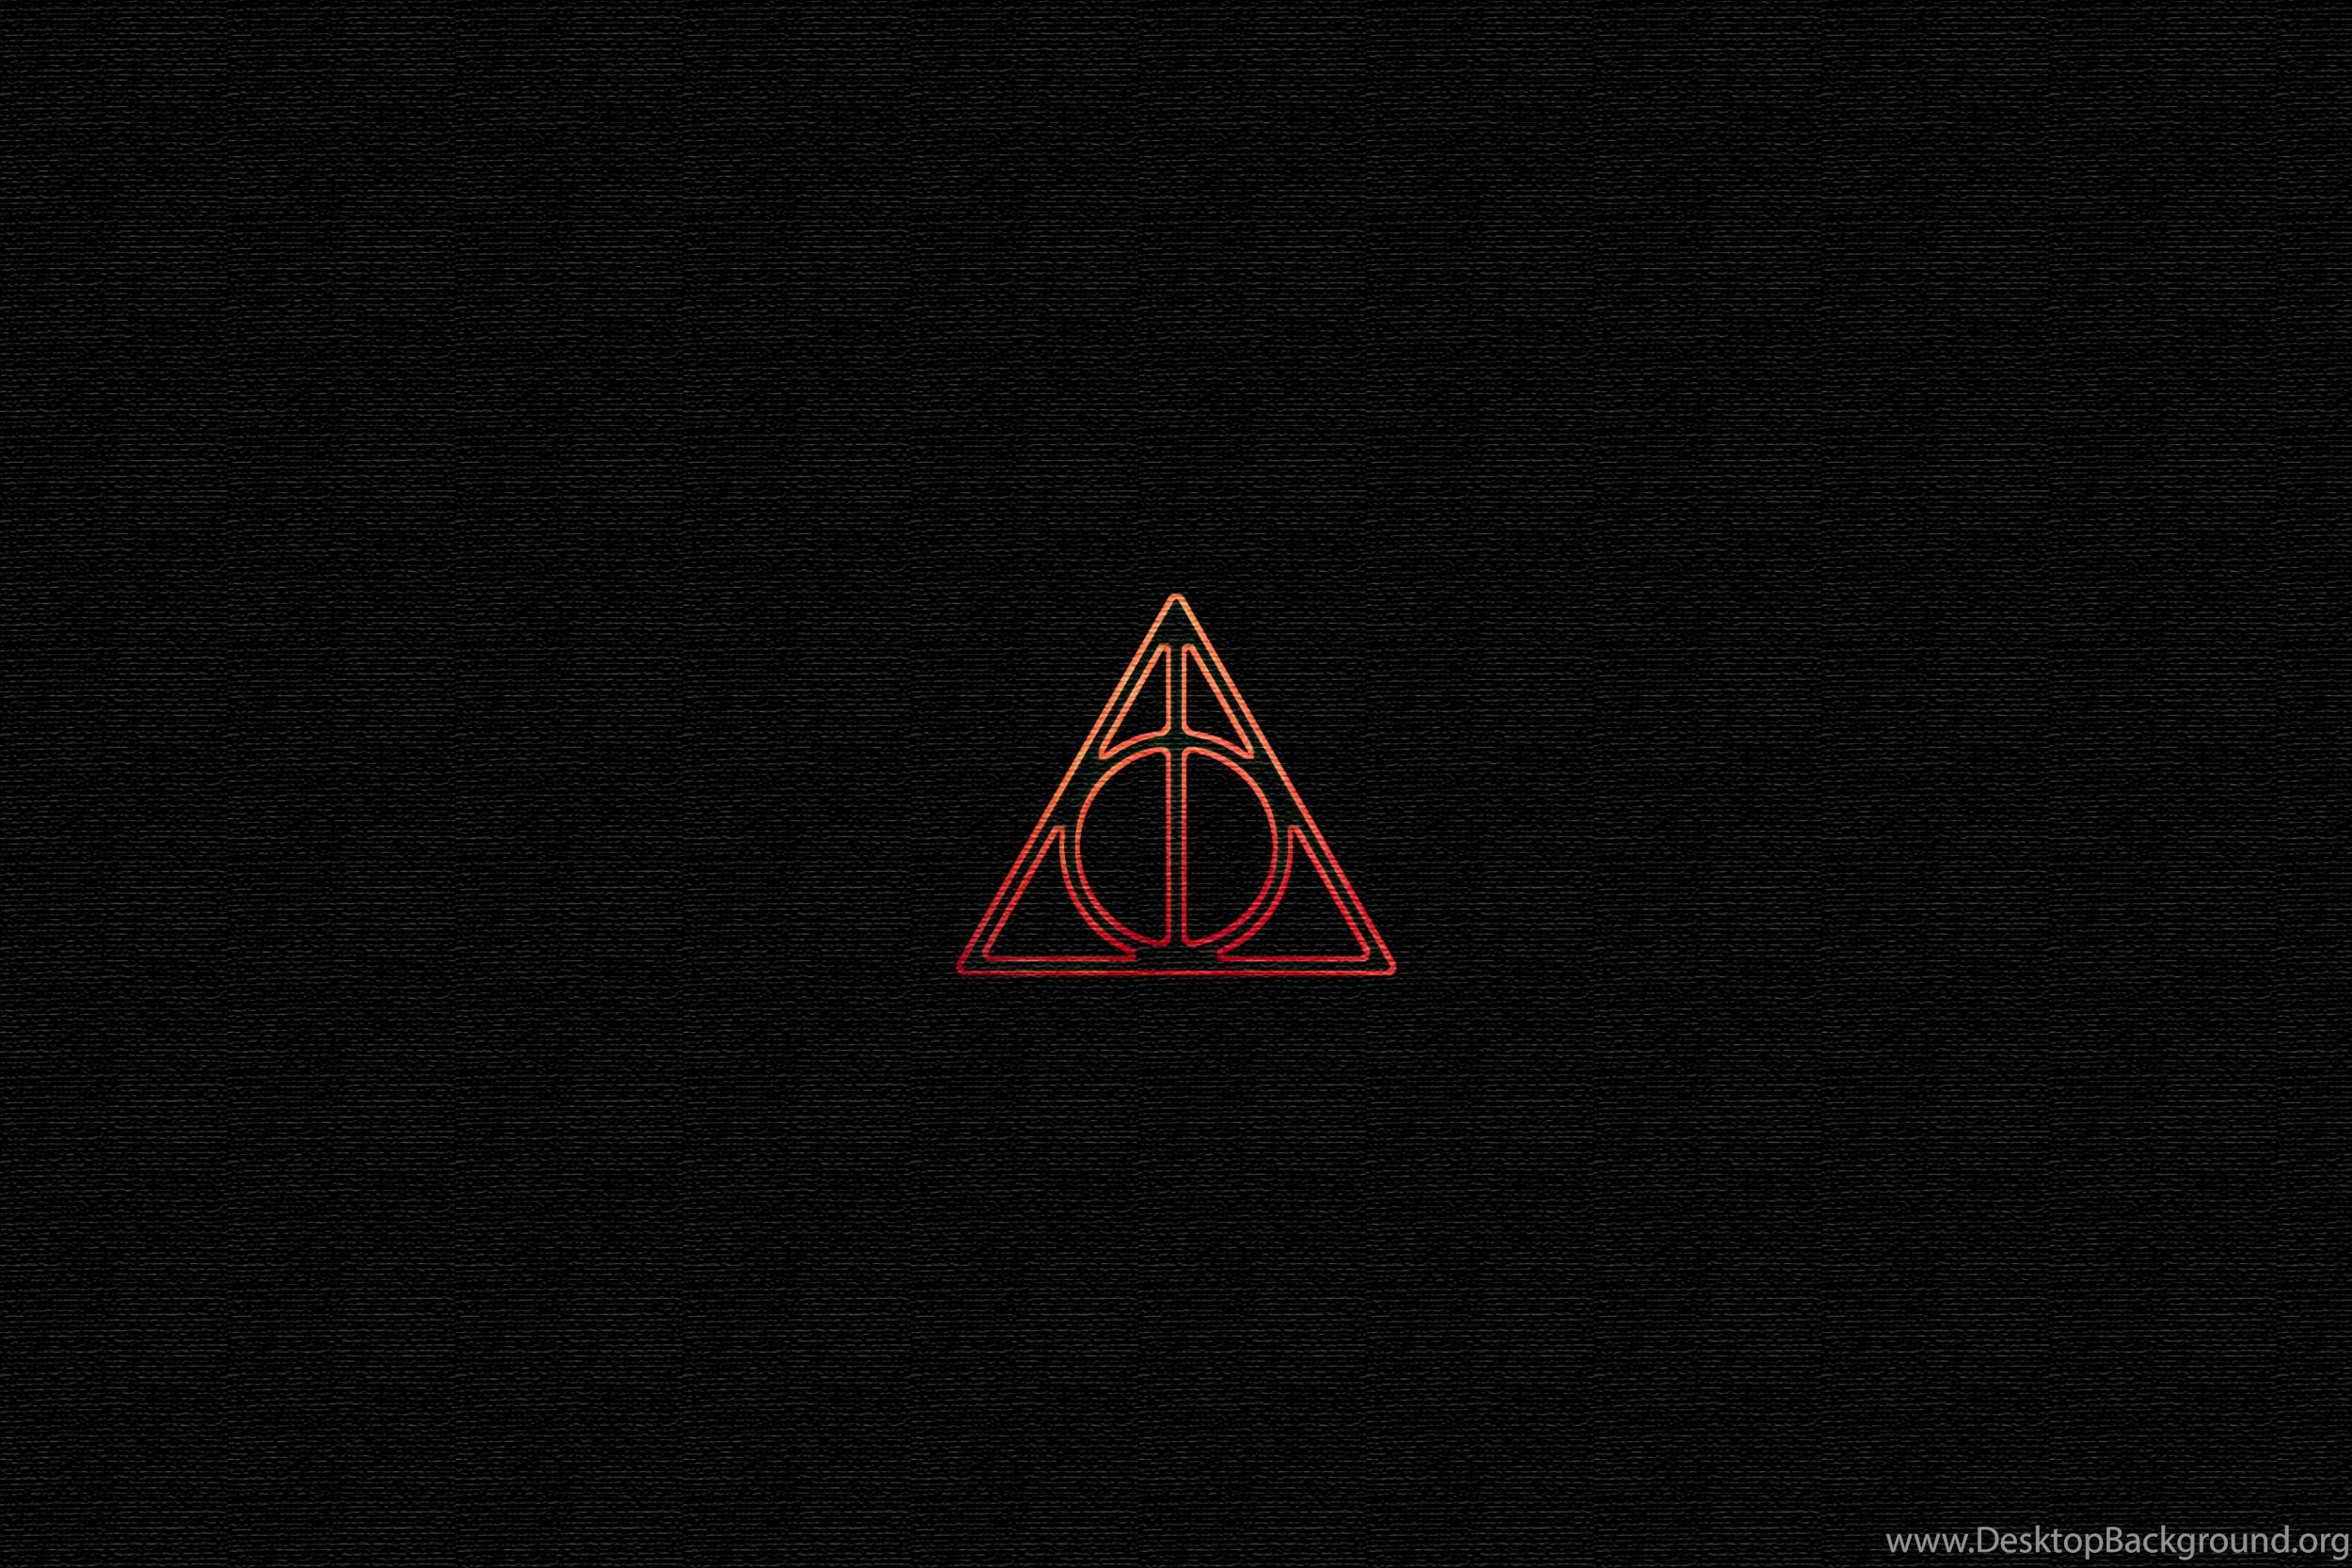 Amazing Wallpaper Harry Potter Deathly Hallows - 590483_jestingstock-com-harry-potter-deathly-hallows-symbol-wallpapers_2500x1667_h  Best Photo Reference_30975.jpg